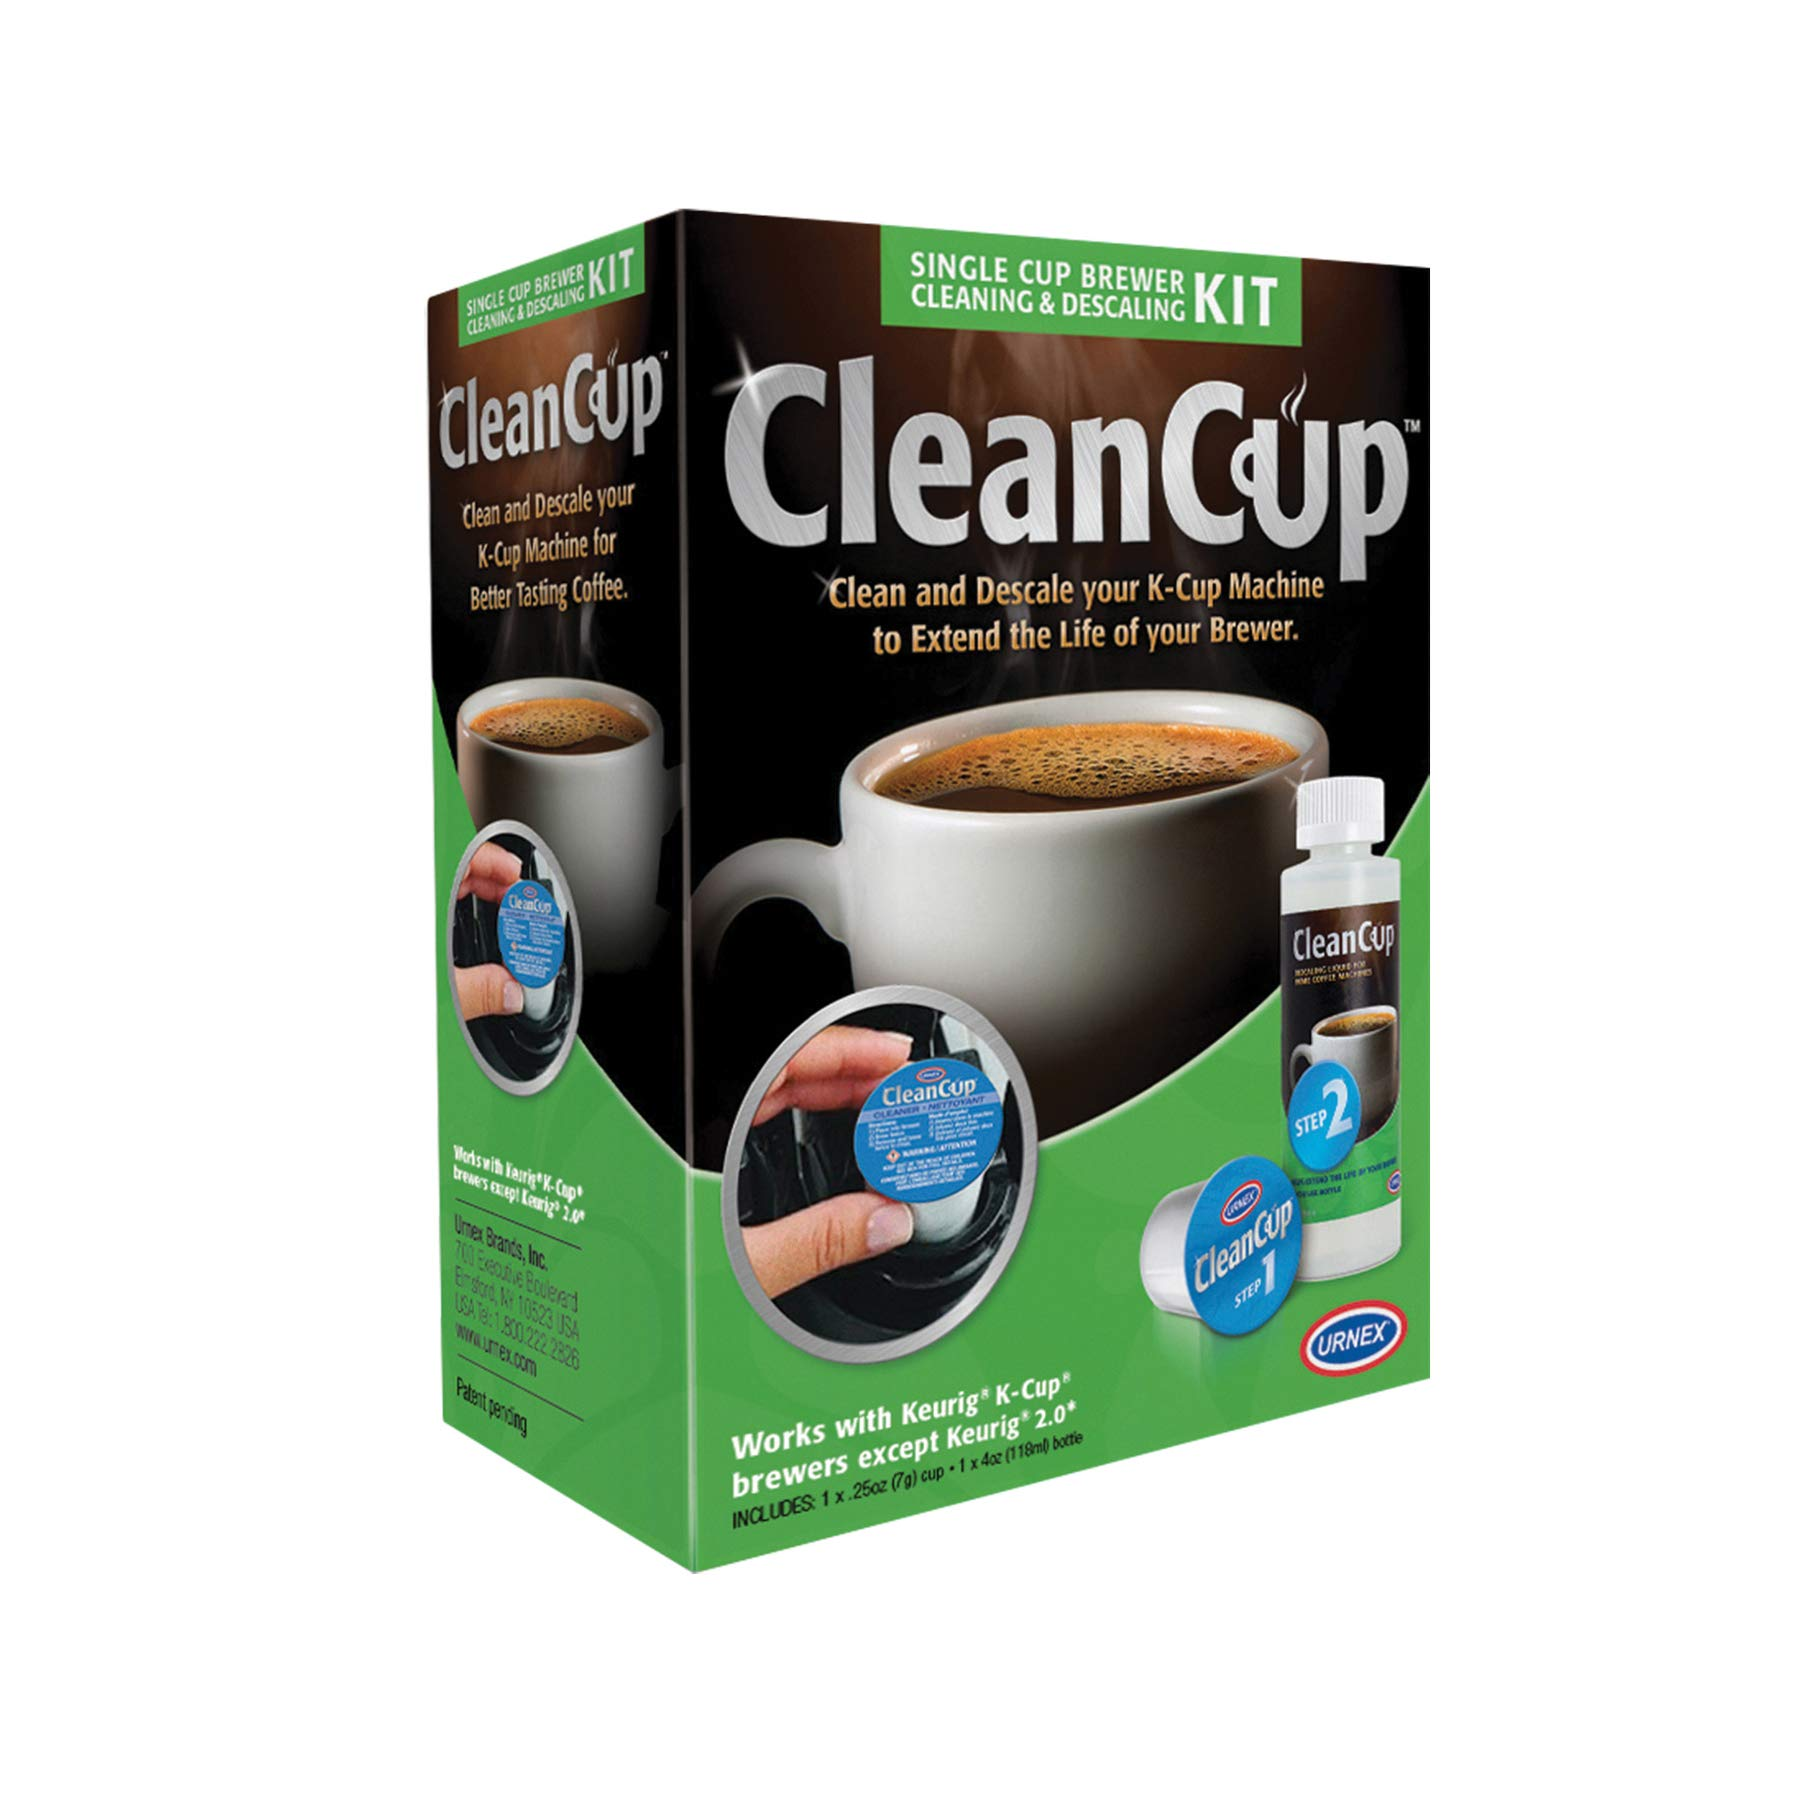 SINGLE CUP BREW CLEAN & SCALE, Set of 4